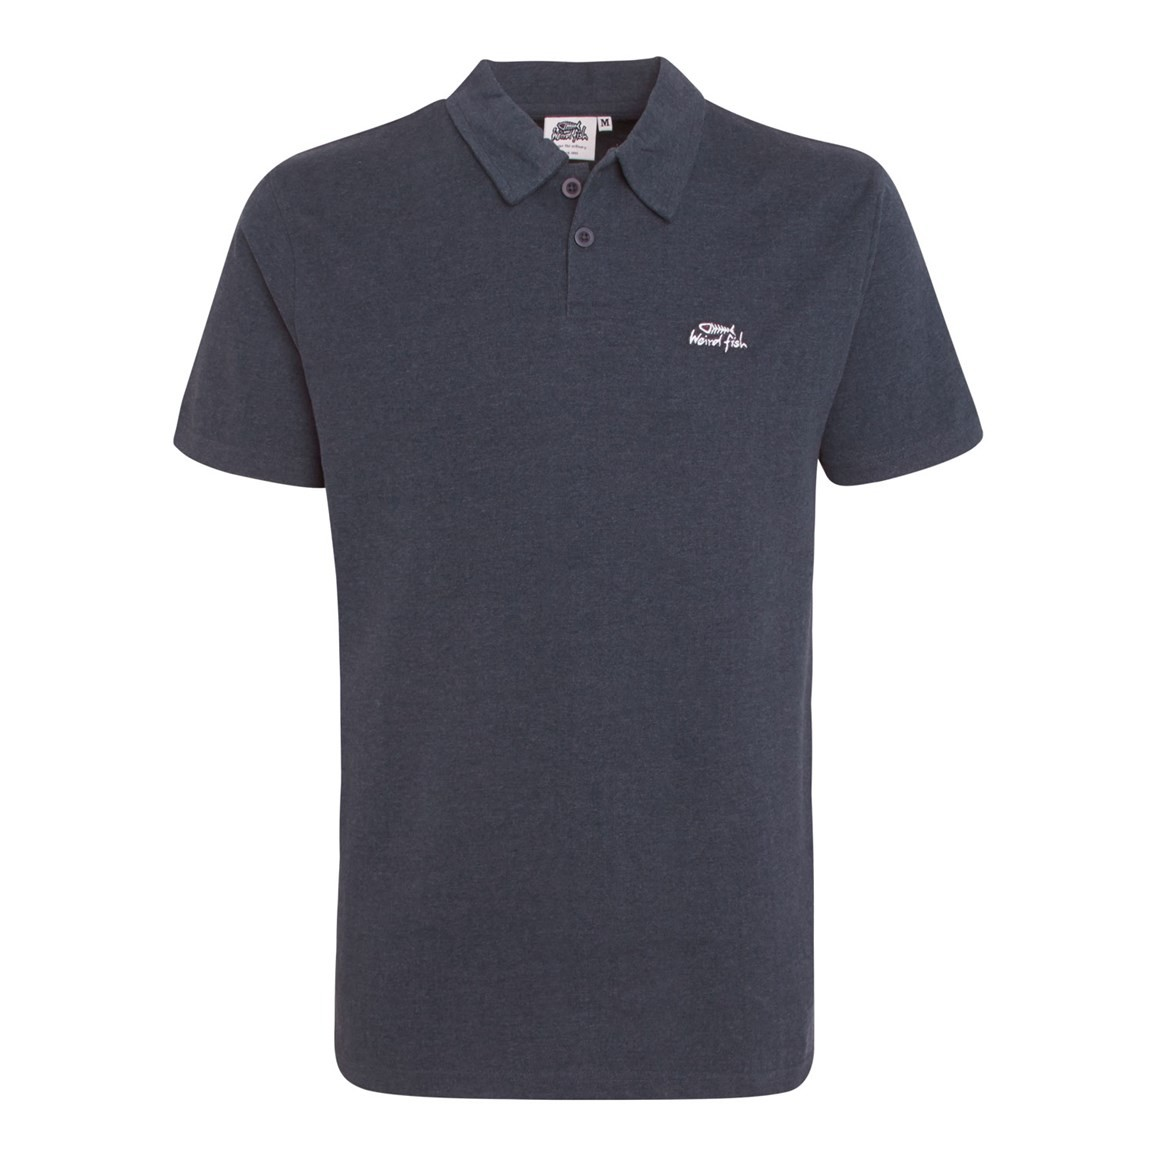 Weird fish shirt price comparison results for Polo shirt with fish logo